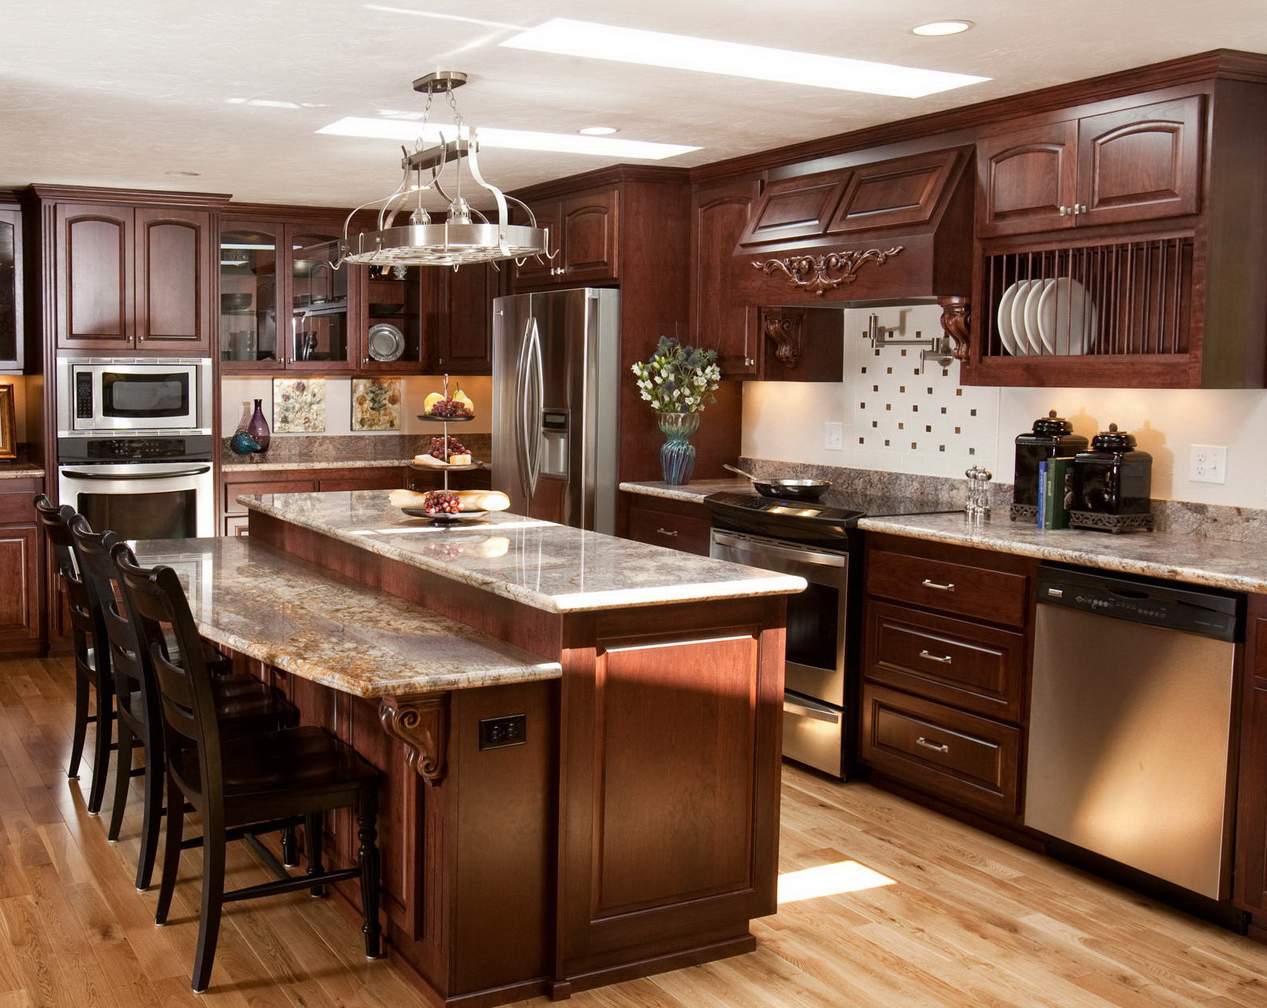 Featured Image of Wooden Italian Kitchen Decor